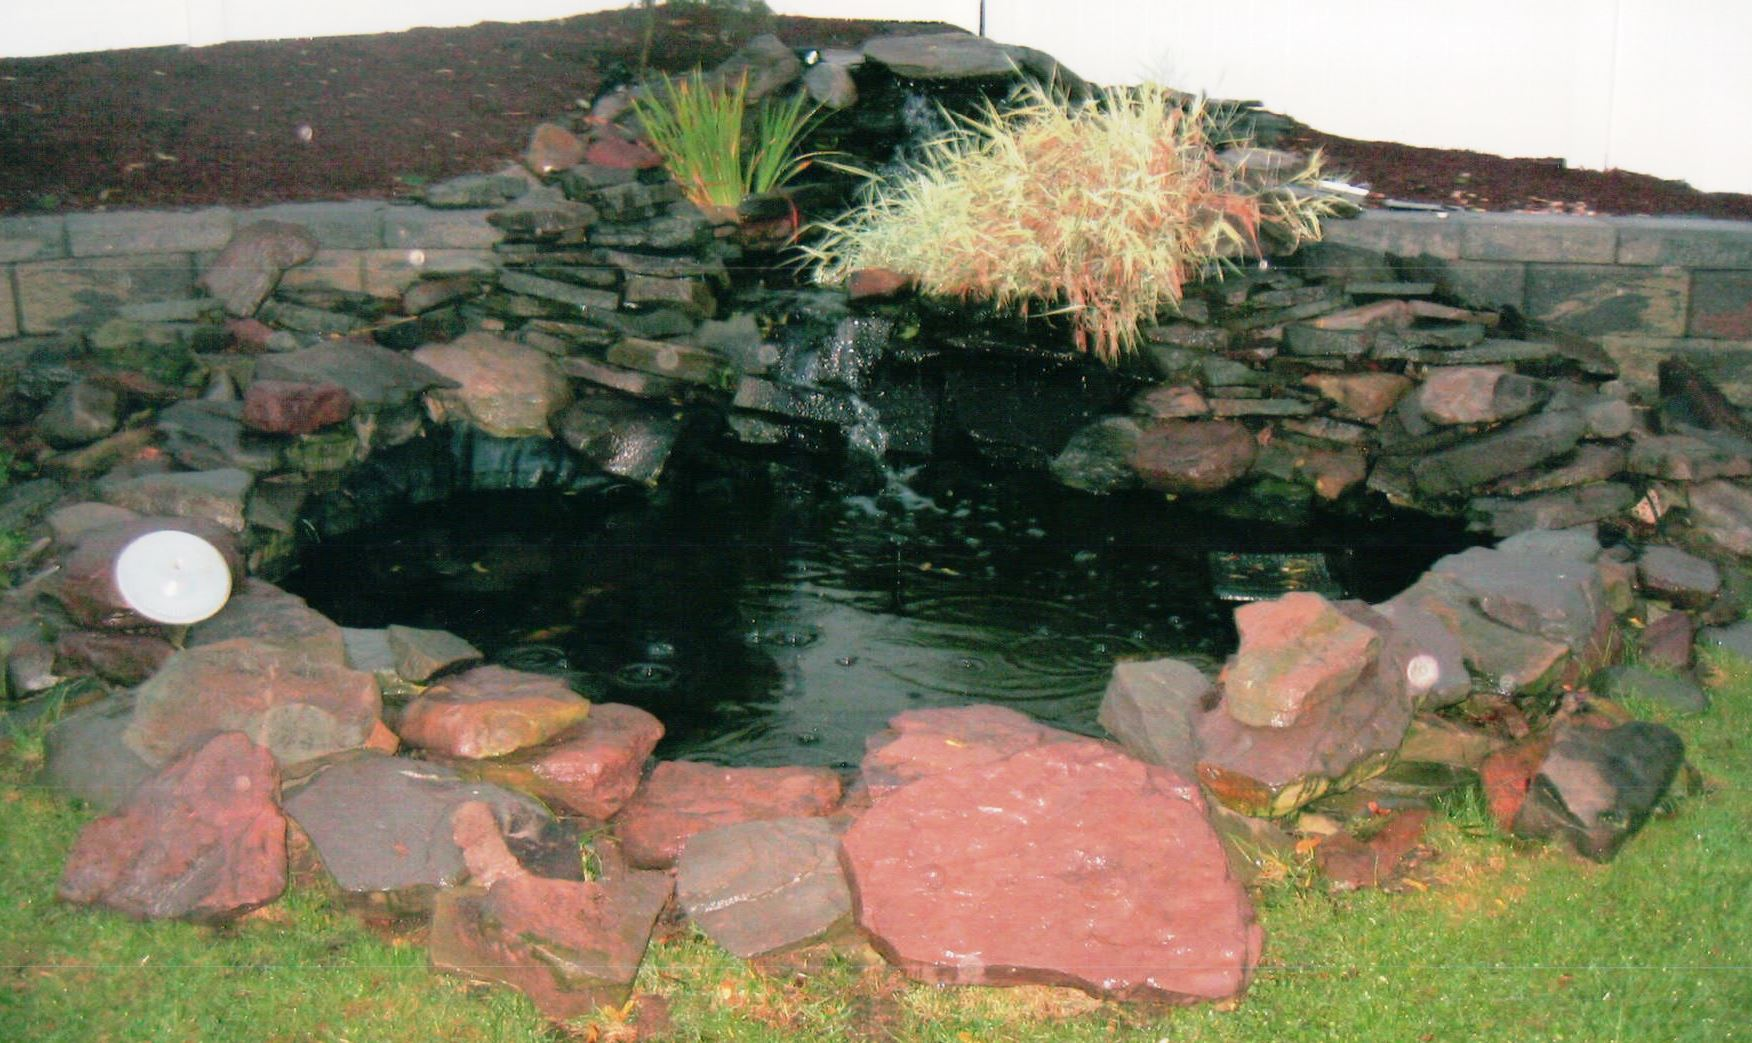 Blackfeld Fisheries Stone Work